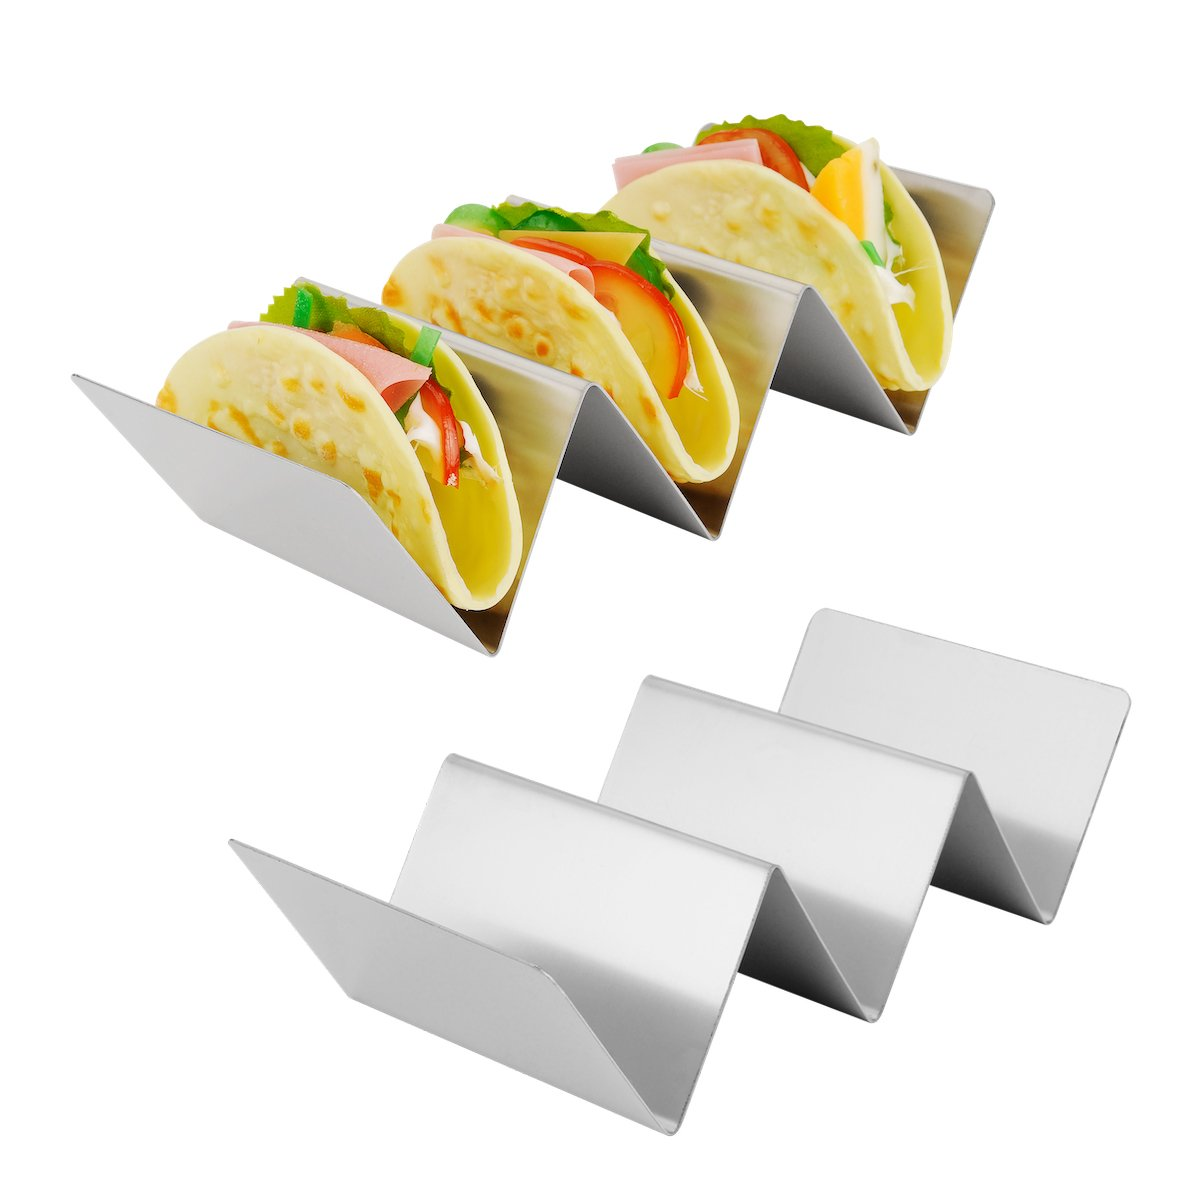 Amazer 2 Pack Taco Holder Stand, Large Stainless Steel Taco Rack Hold Hard or Soft Taco Shells, Oven Safe for Baking Dishwasher and Grill Safe -Hold 2 or 3 Tacos